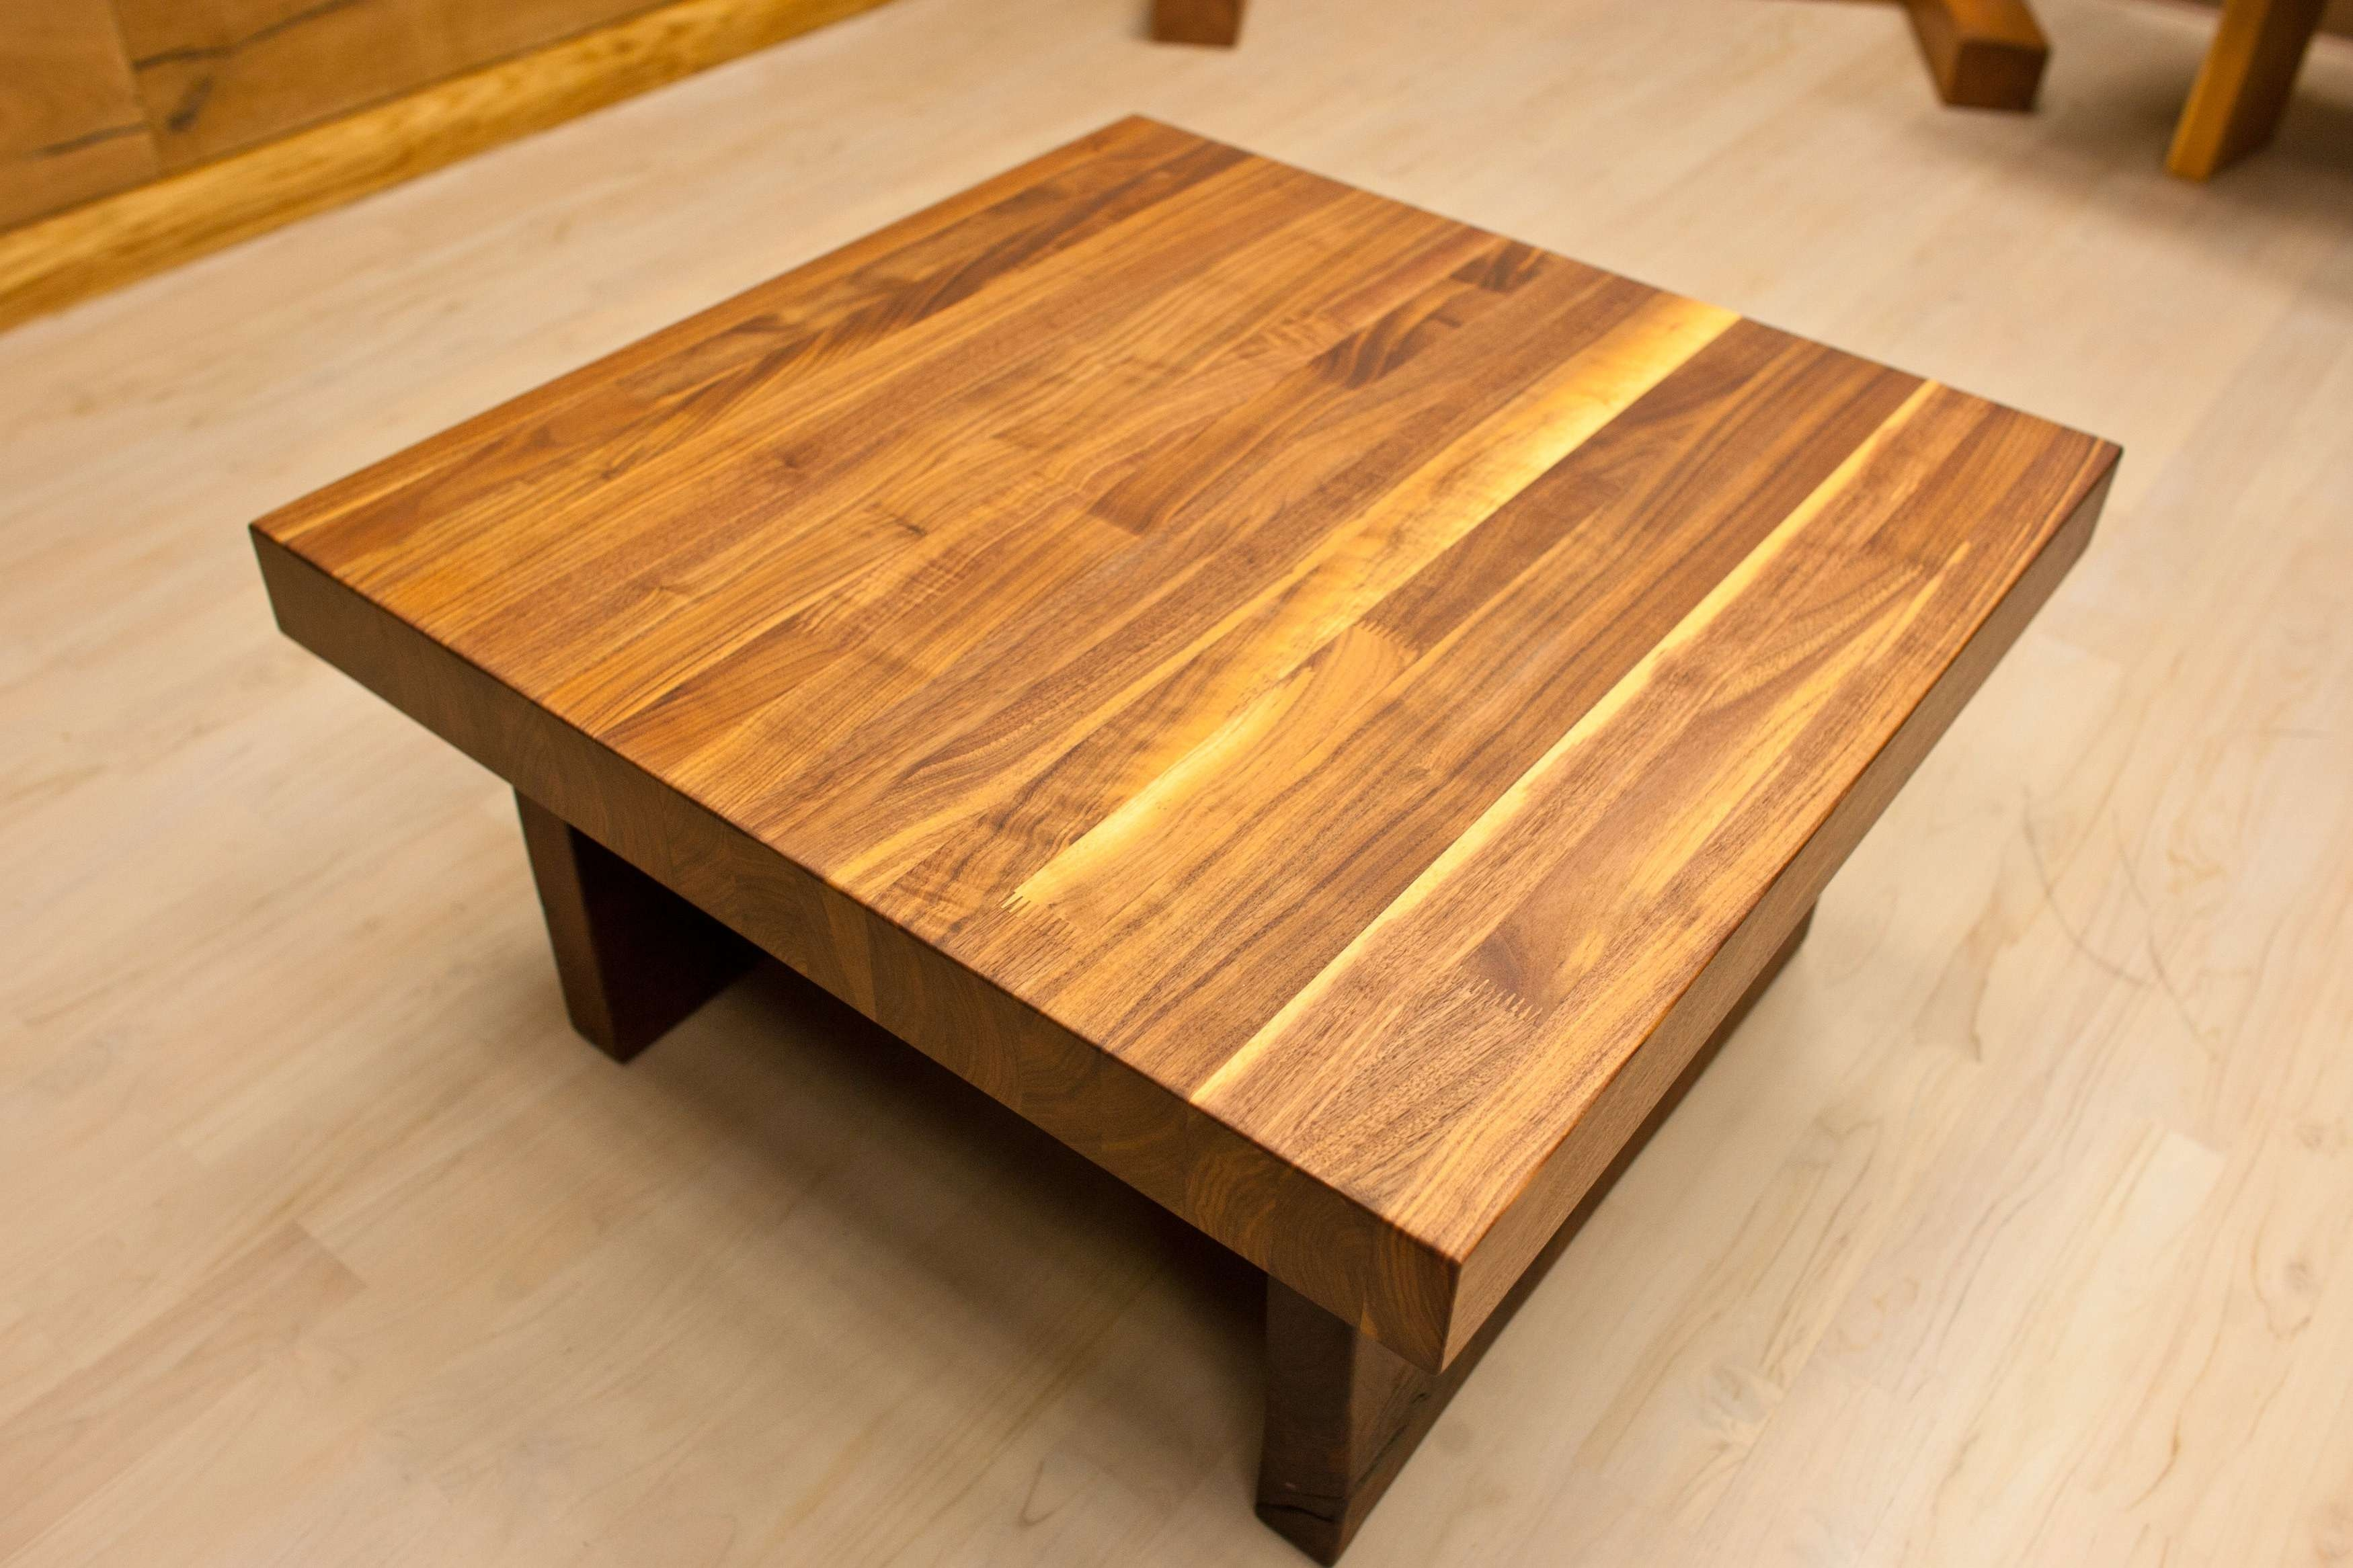 2018 Square Wooden Coffee Tables For Coffee Table : Square Woode Table Sets With Glass Inserts Tables (View 2 of 20)